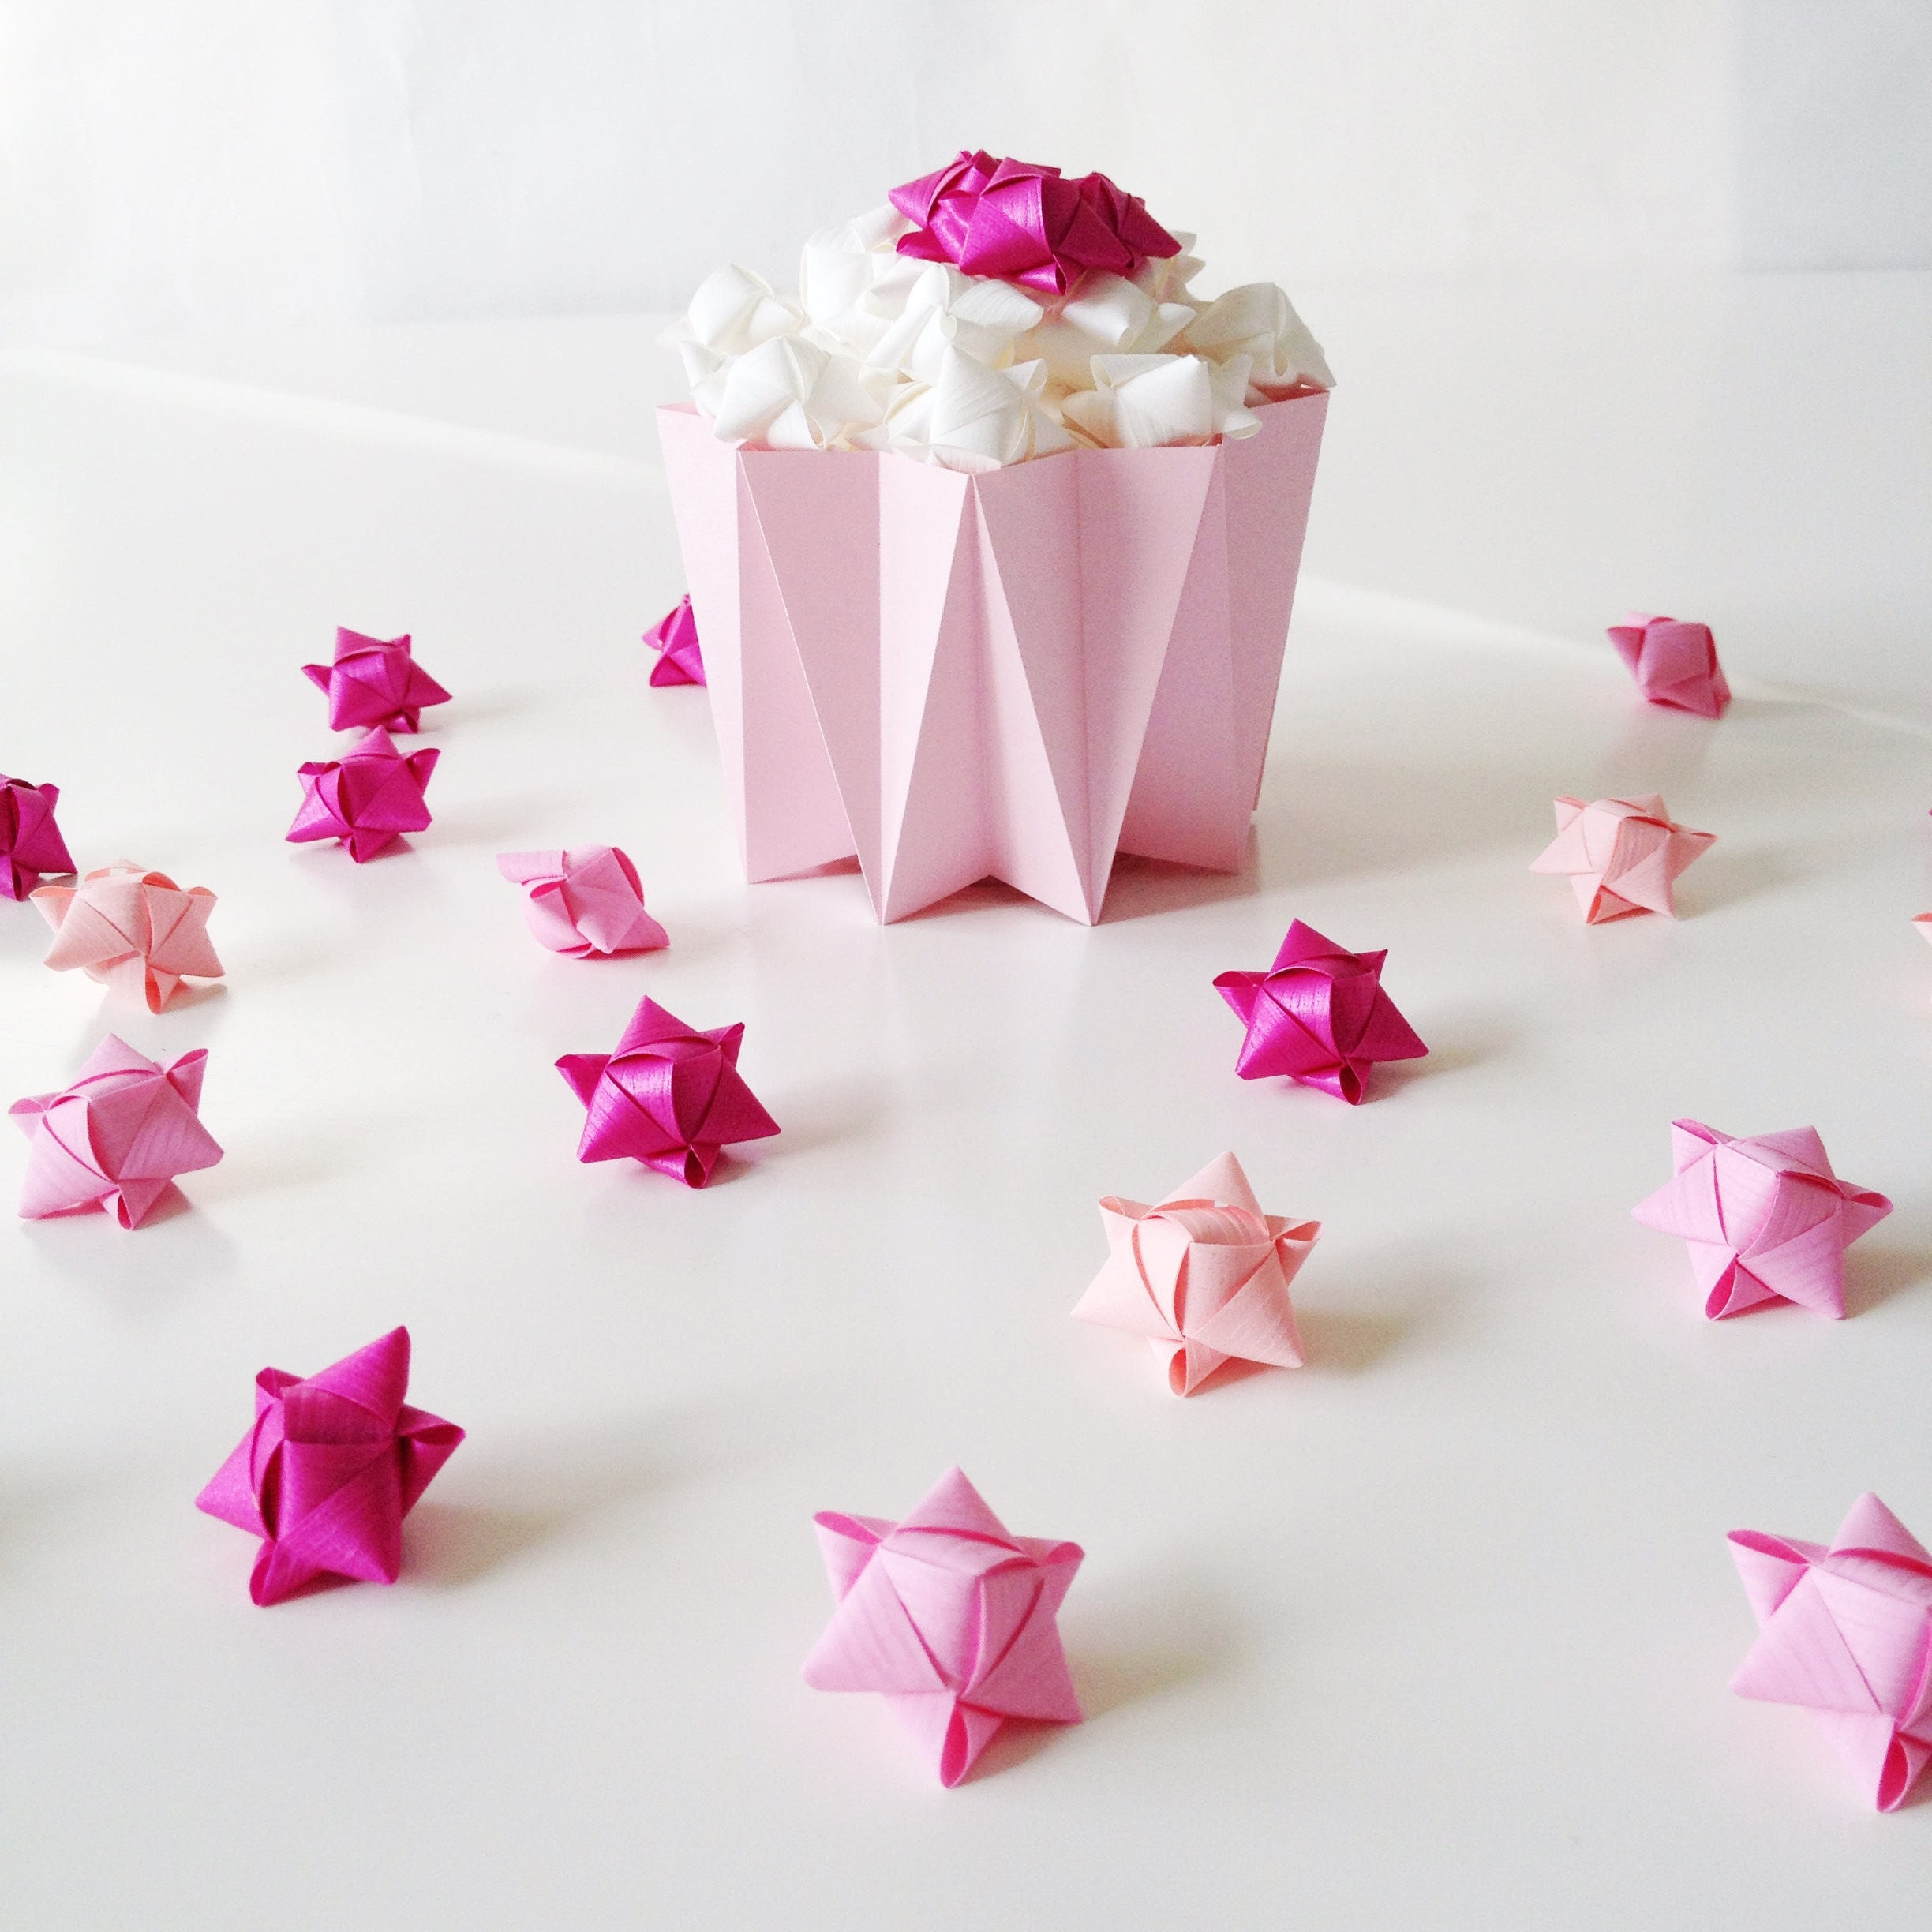 Mini Cube stars for table and gift decoration 15 pcs - Coral, Pastel ...